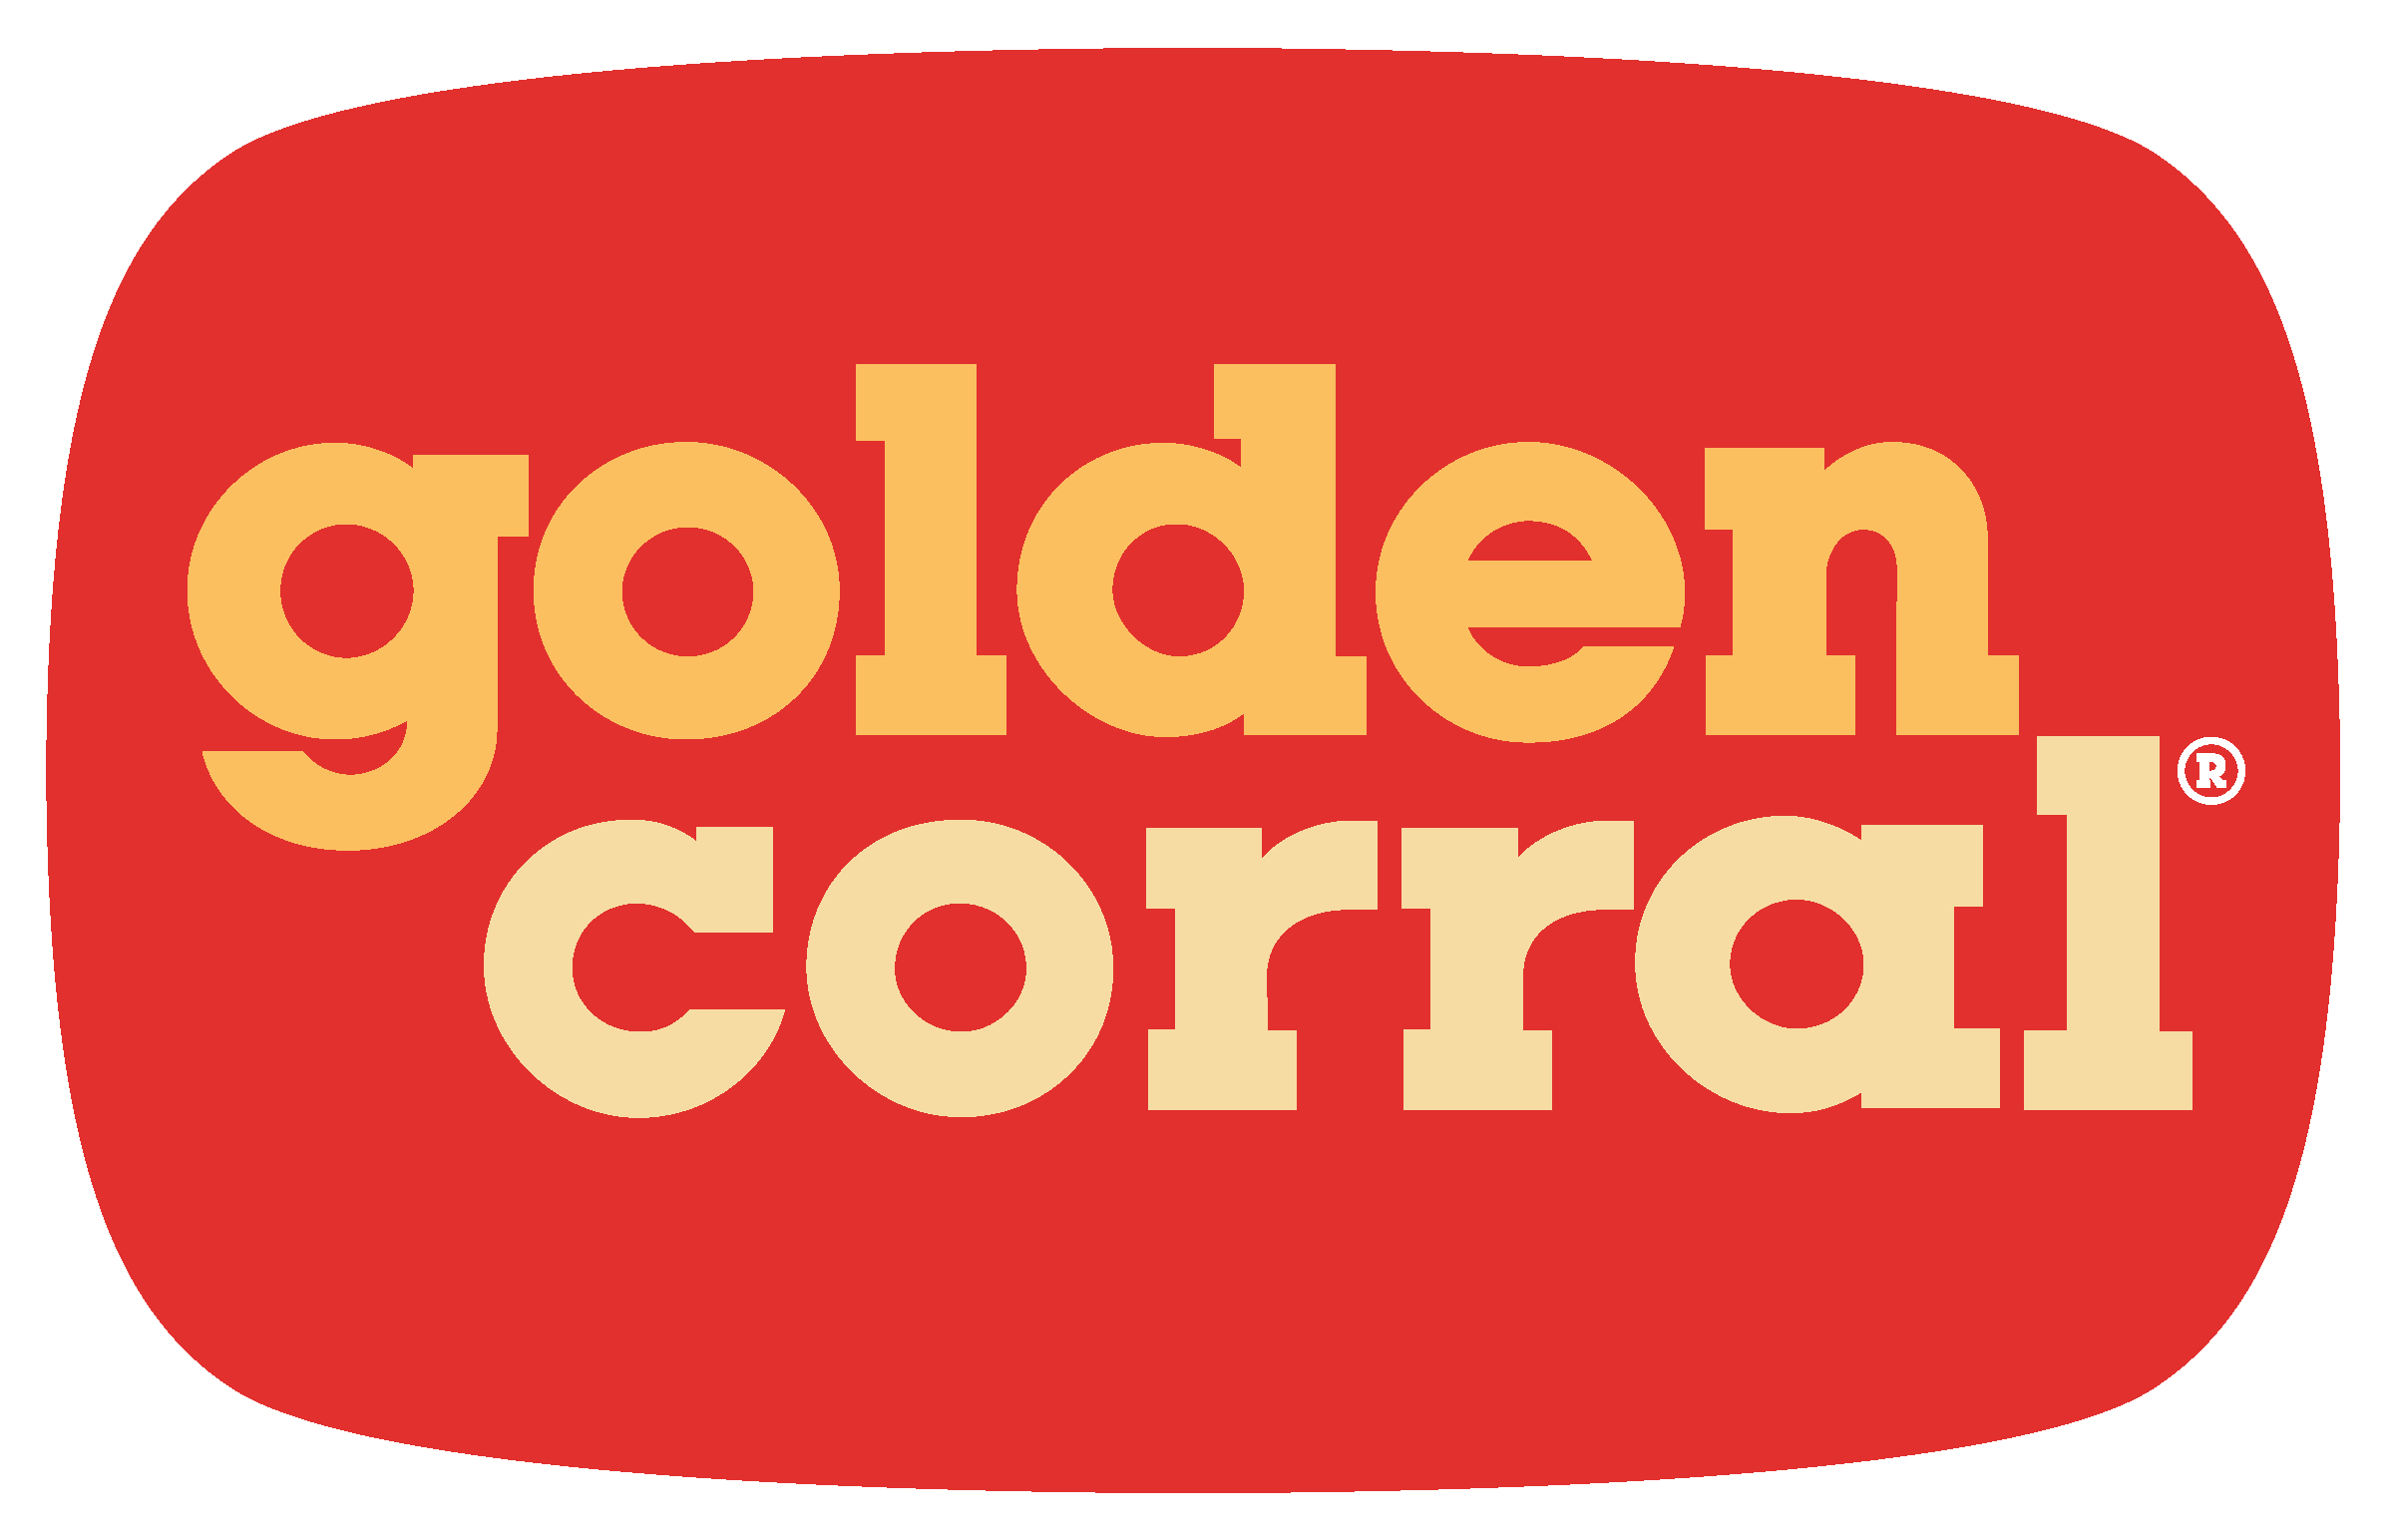 Golden Corral <br>VGSE19 Refueling Sponsor